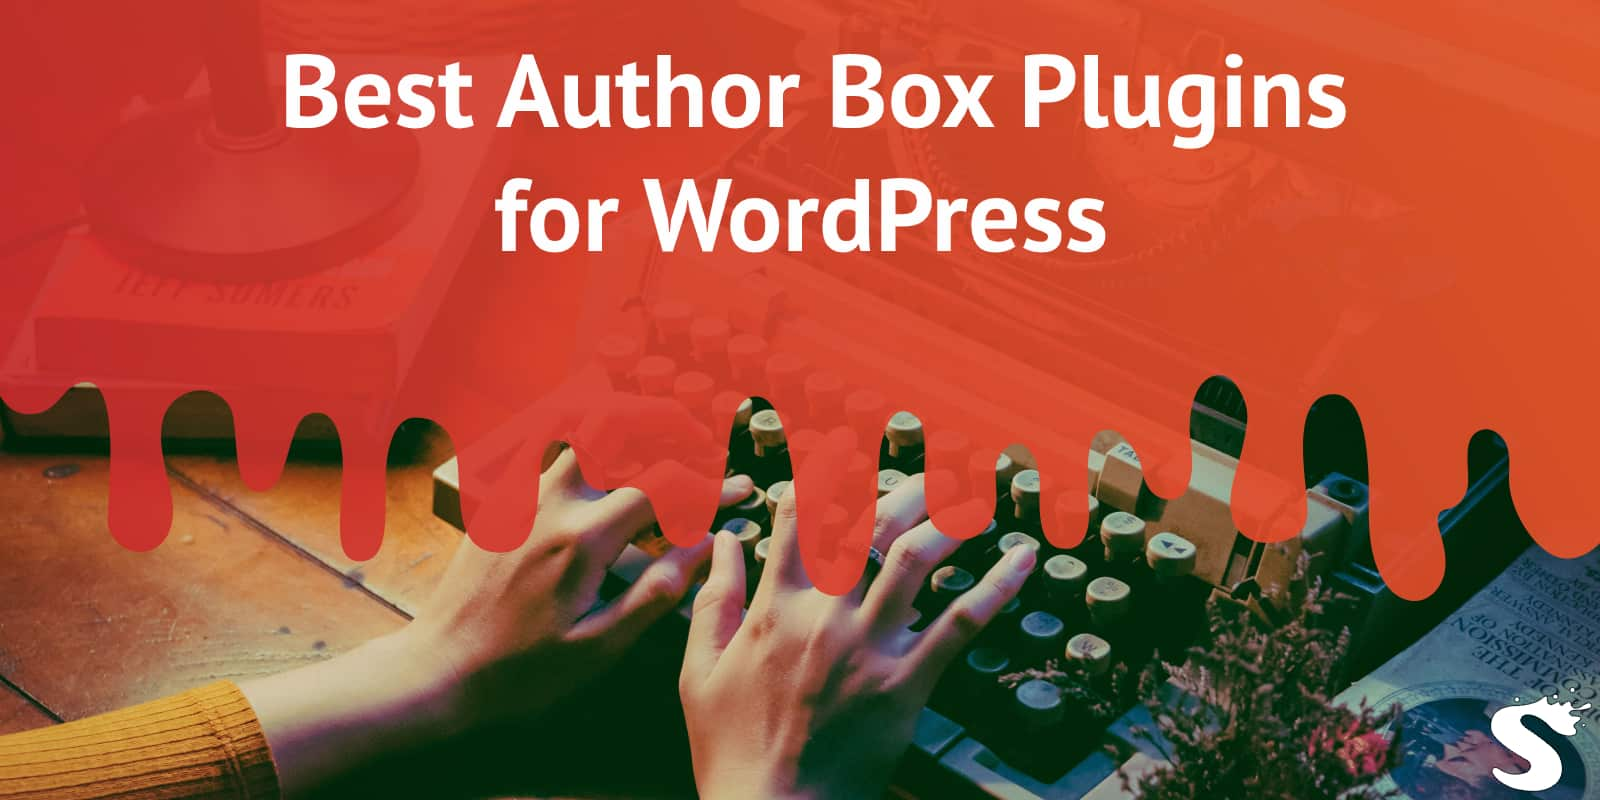 Best Author Box Plugins for WordPress